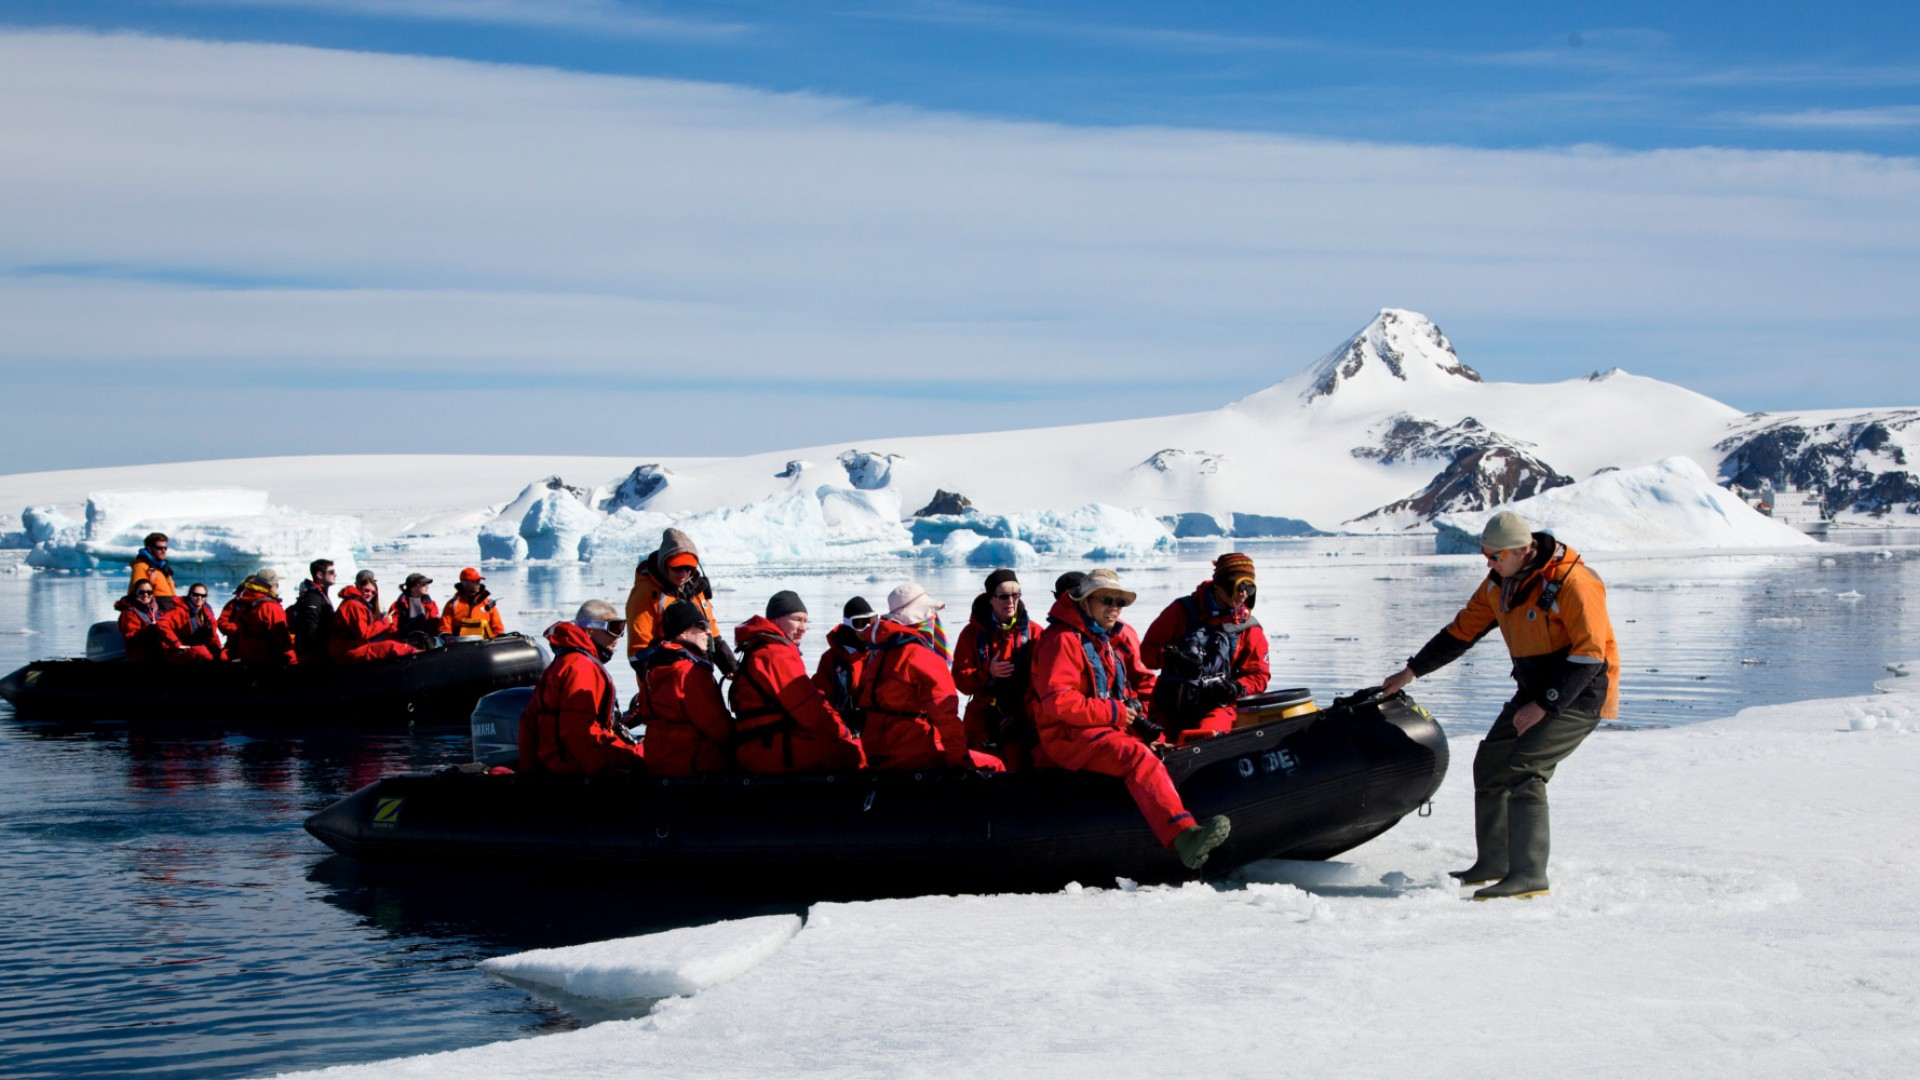 zodiac with people in antarctica